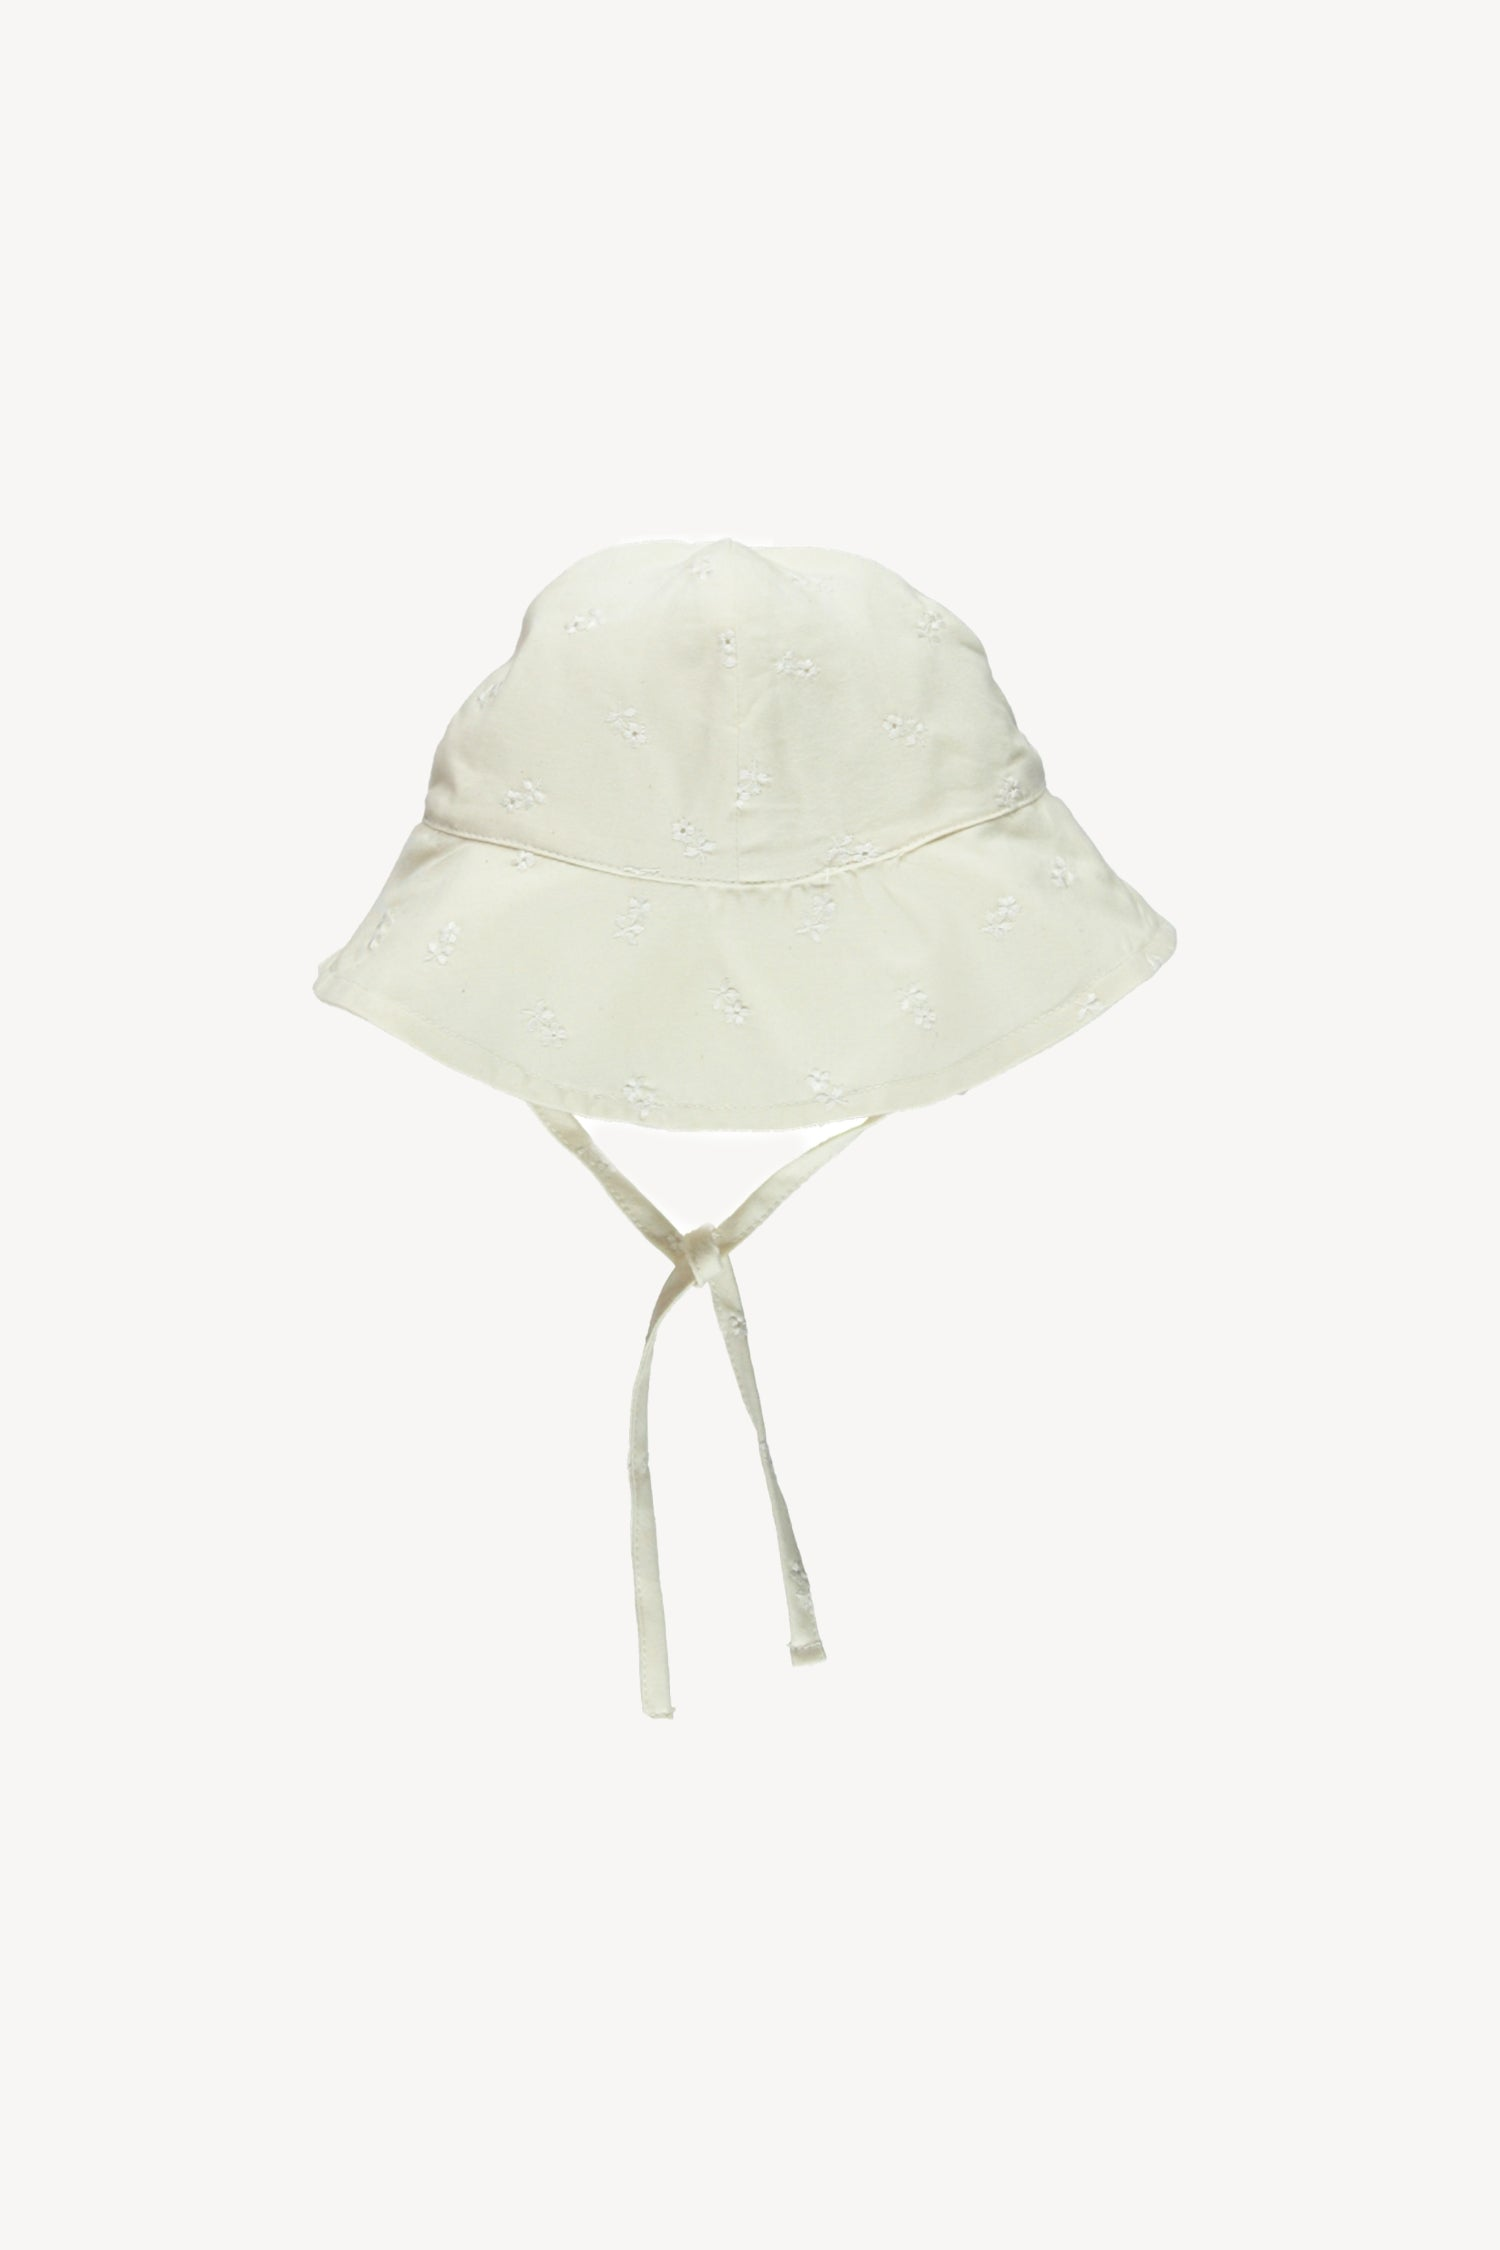 Fin and Vince - Sunhat (Natural Eyelet)